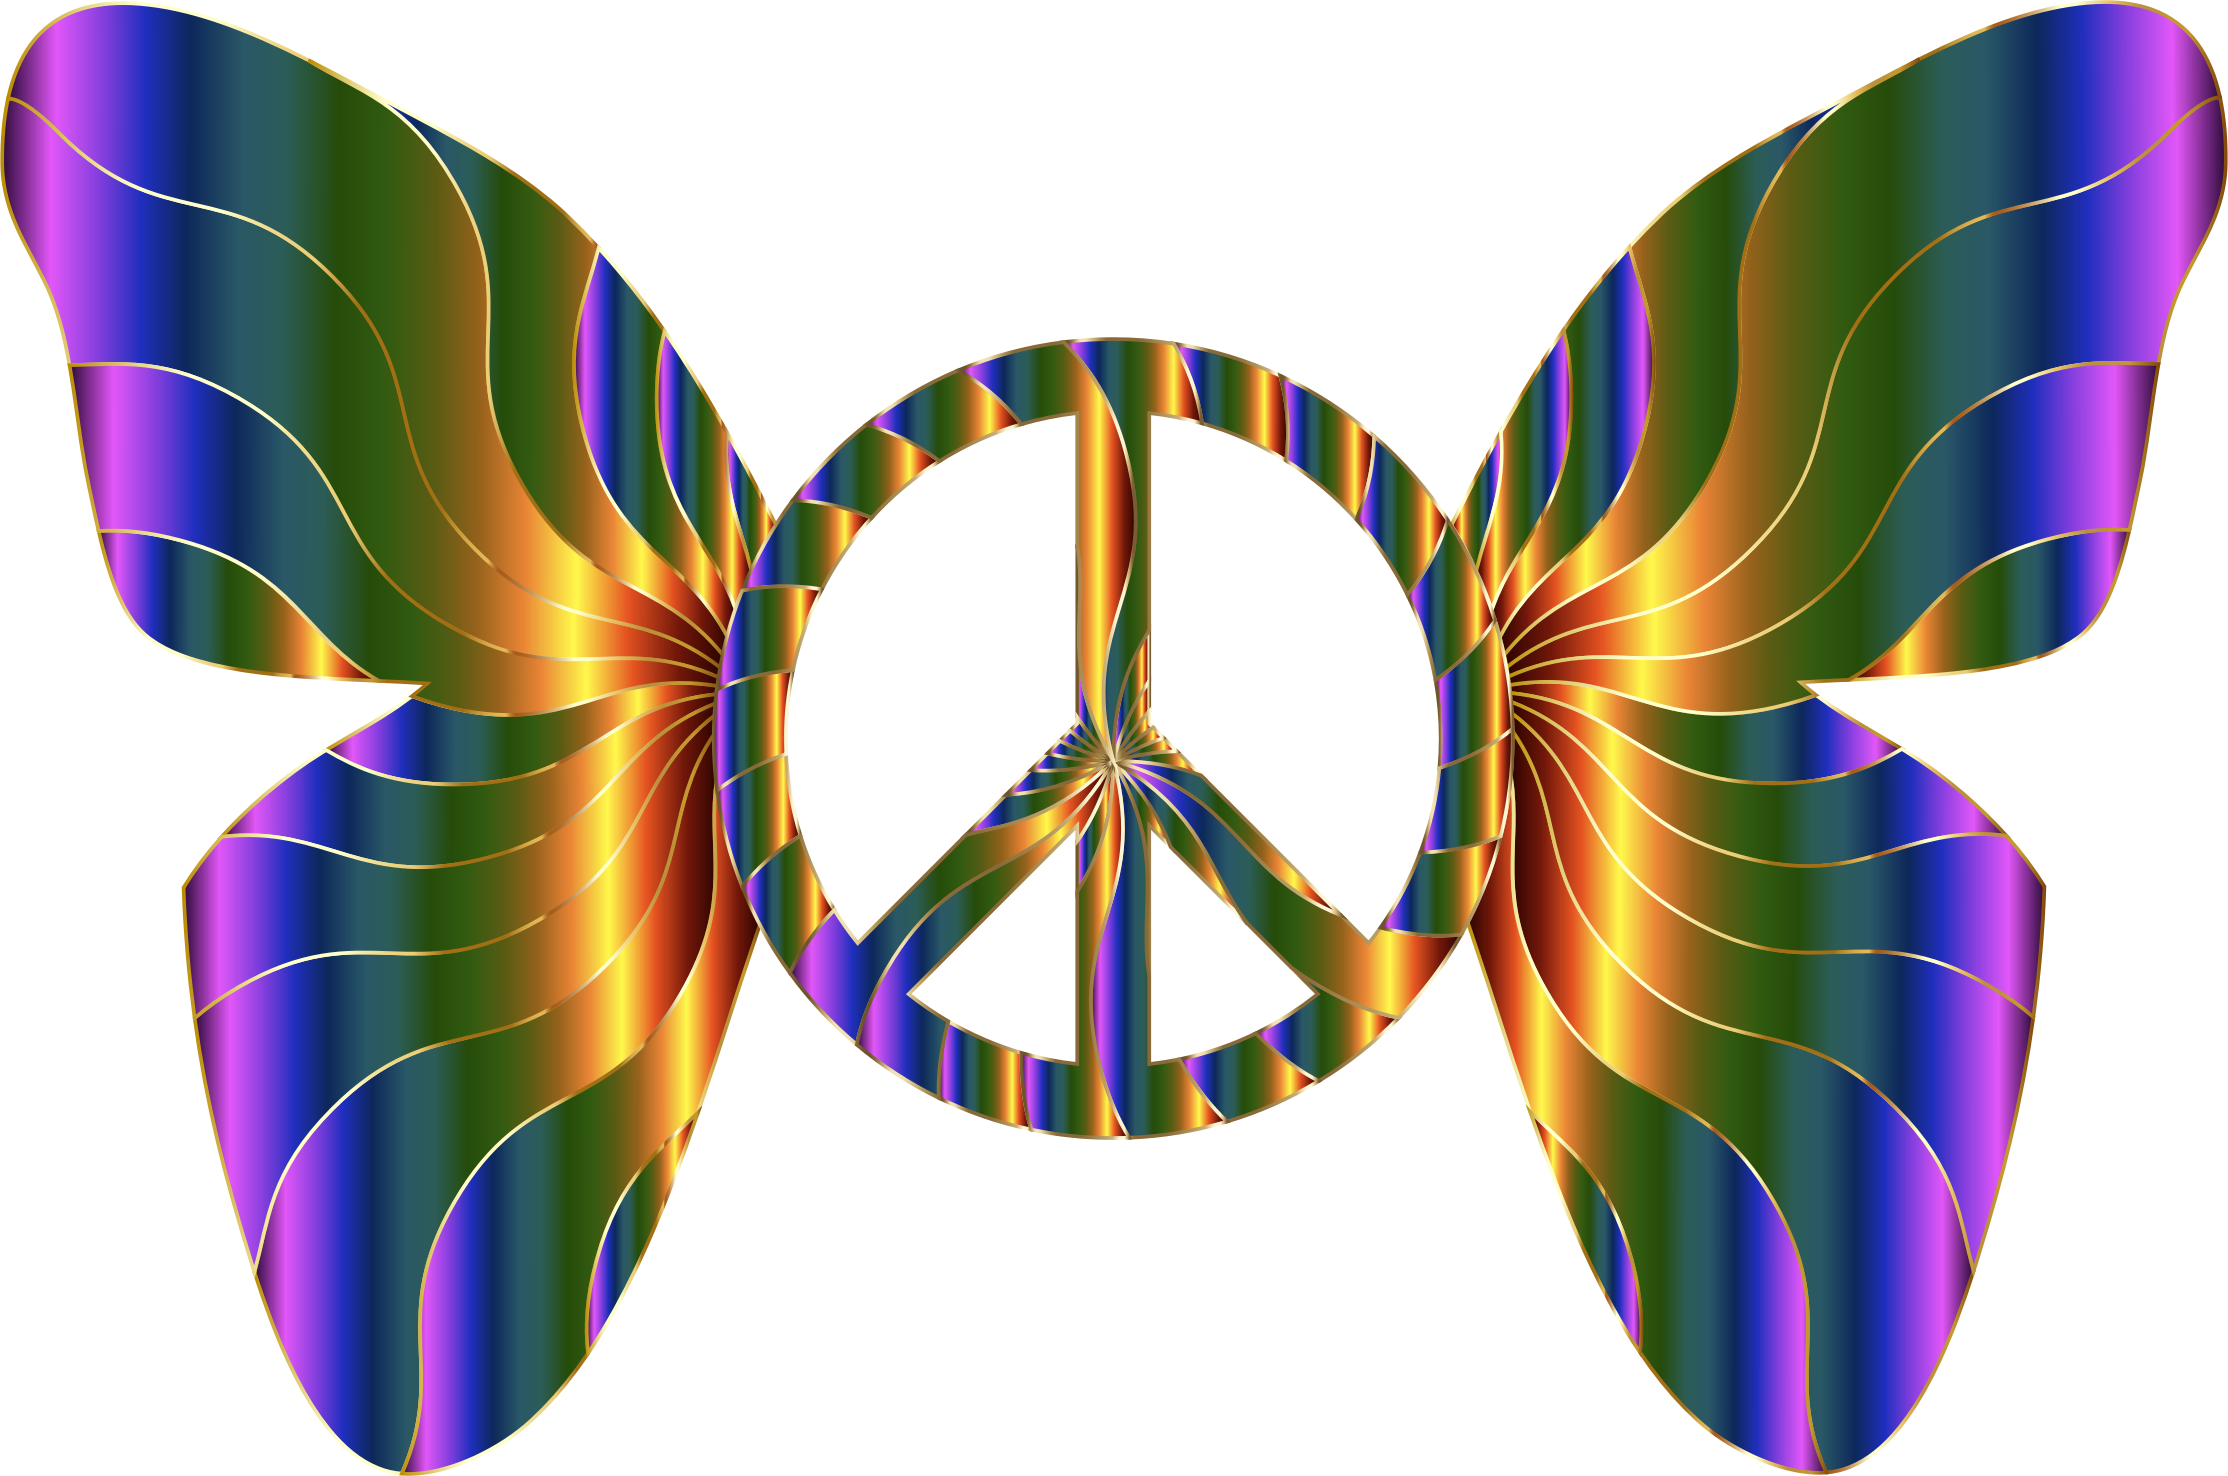 Groovy Peace Sign Butterfly 11 by GDJ